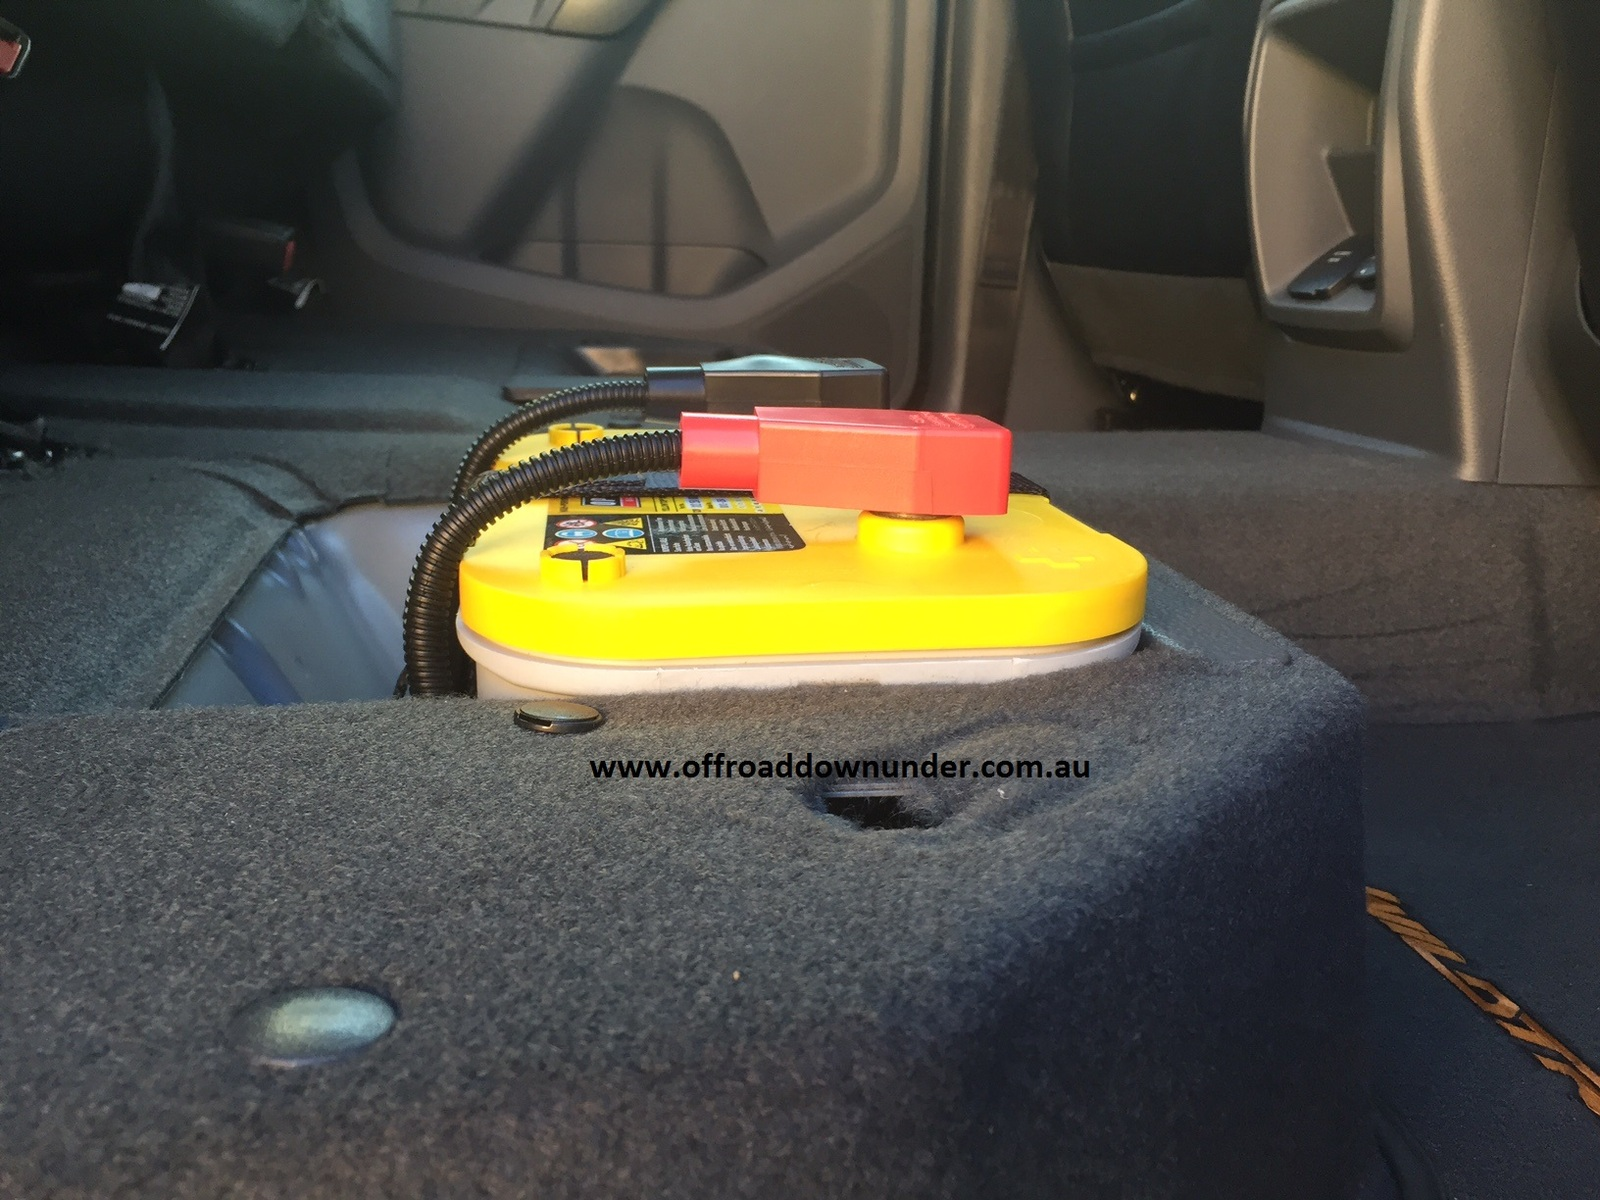 Ford Raptor For Sale Mn >> Off Road Downunder Battery Tray for Ford PX & PX2 Ranger